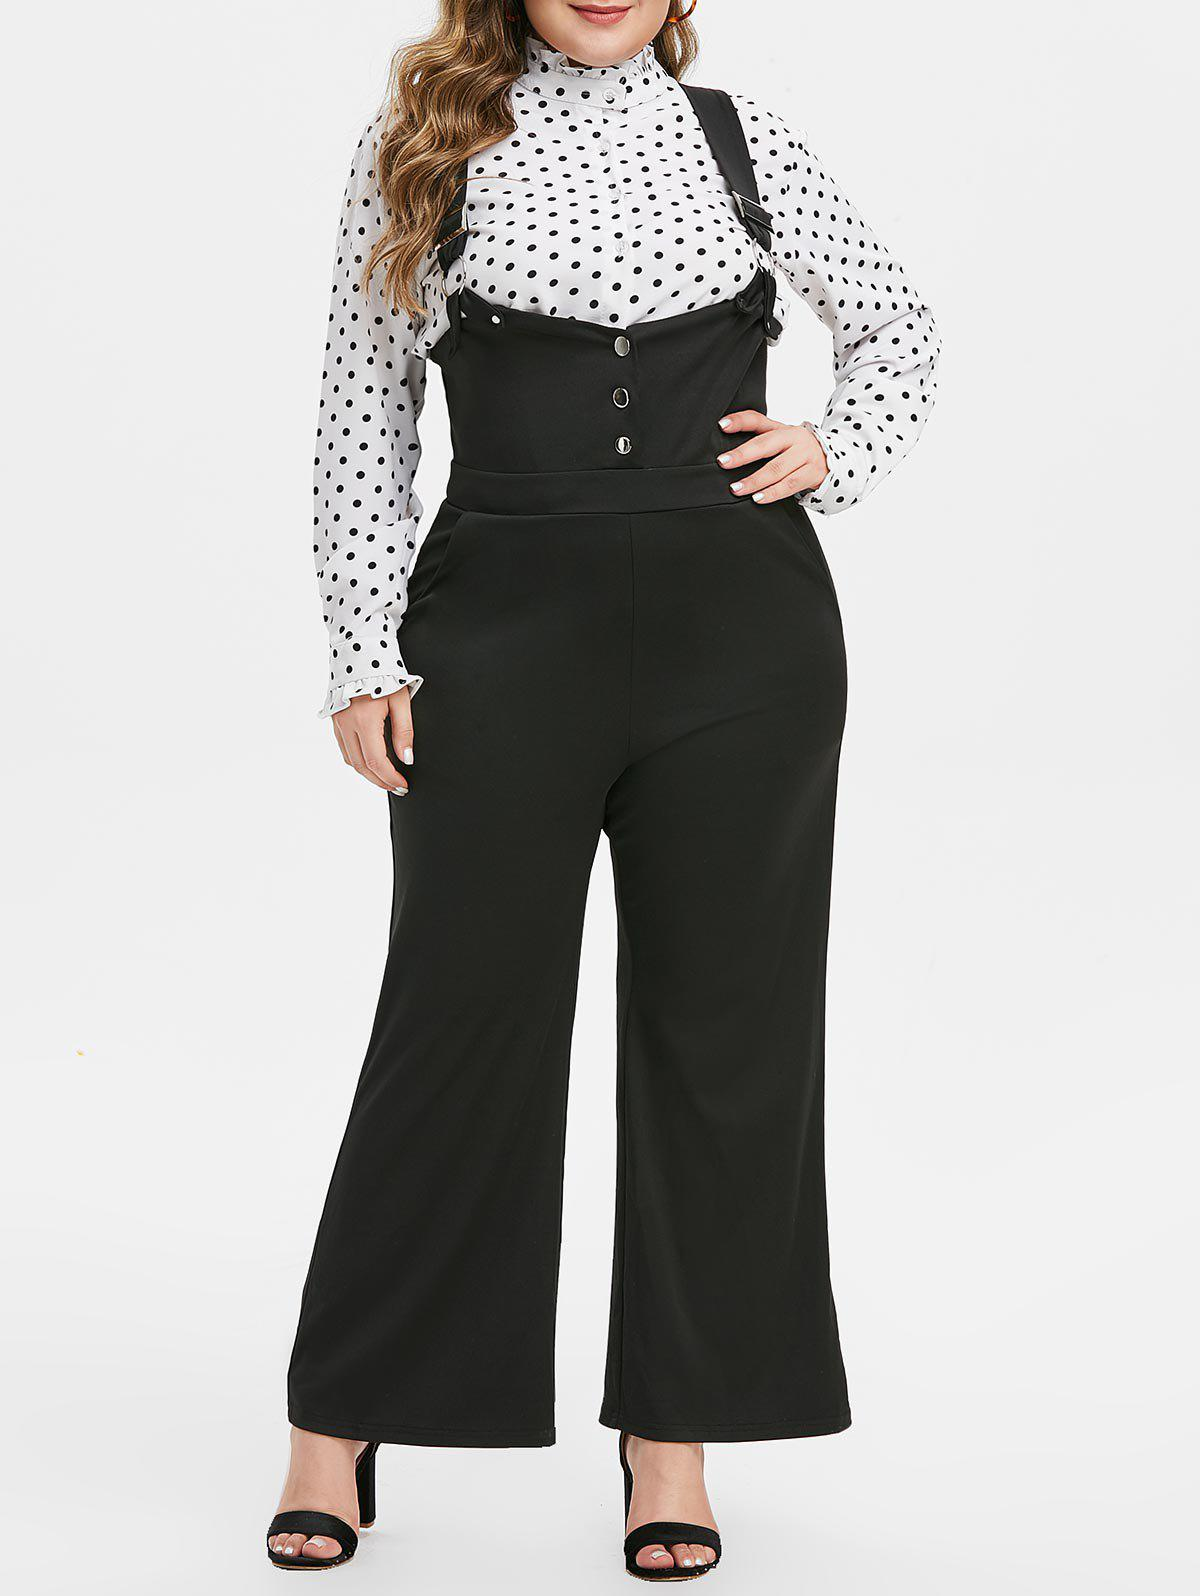 Plus Size Buckle Suspender Wide Leg Jumpsuit - BLACK 5X